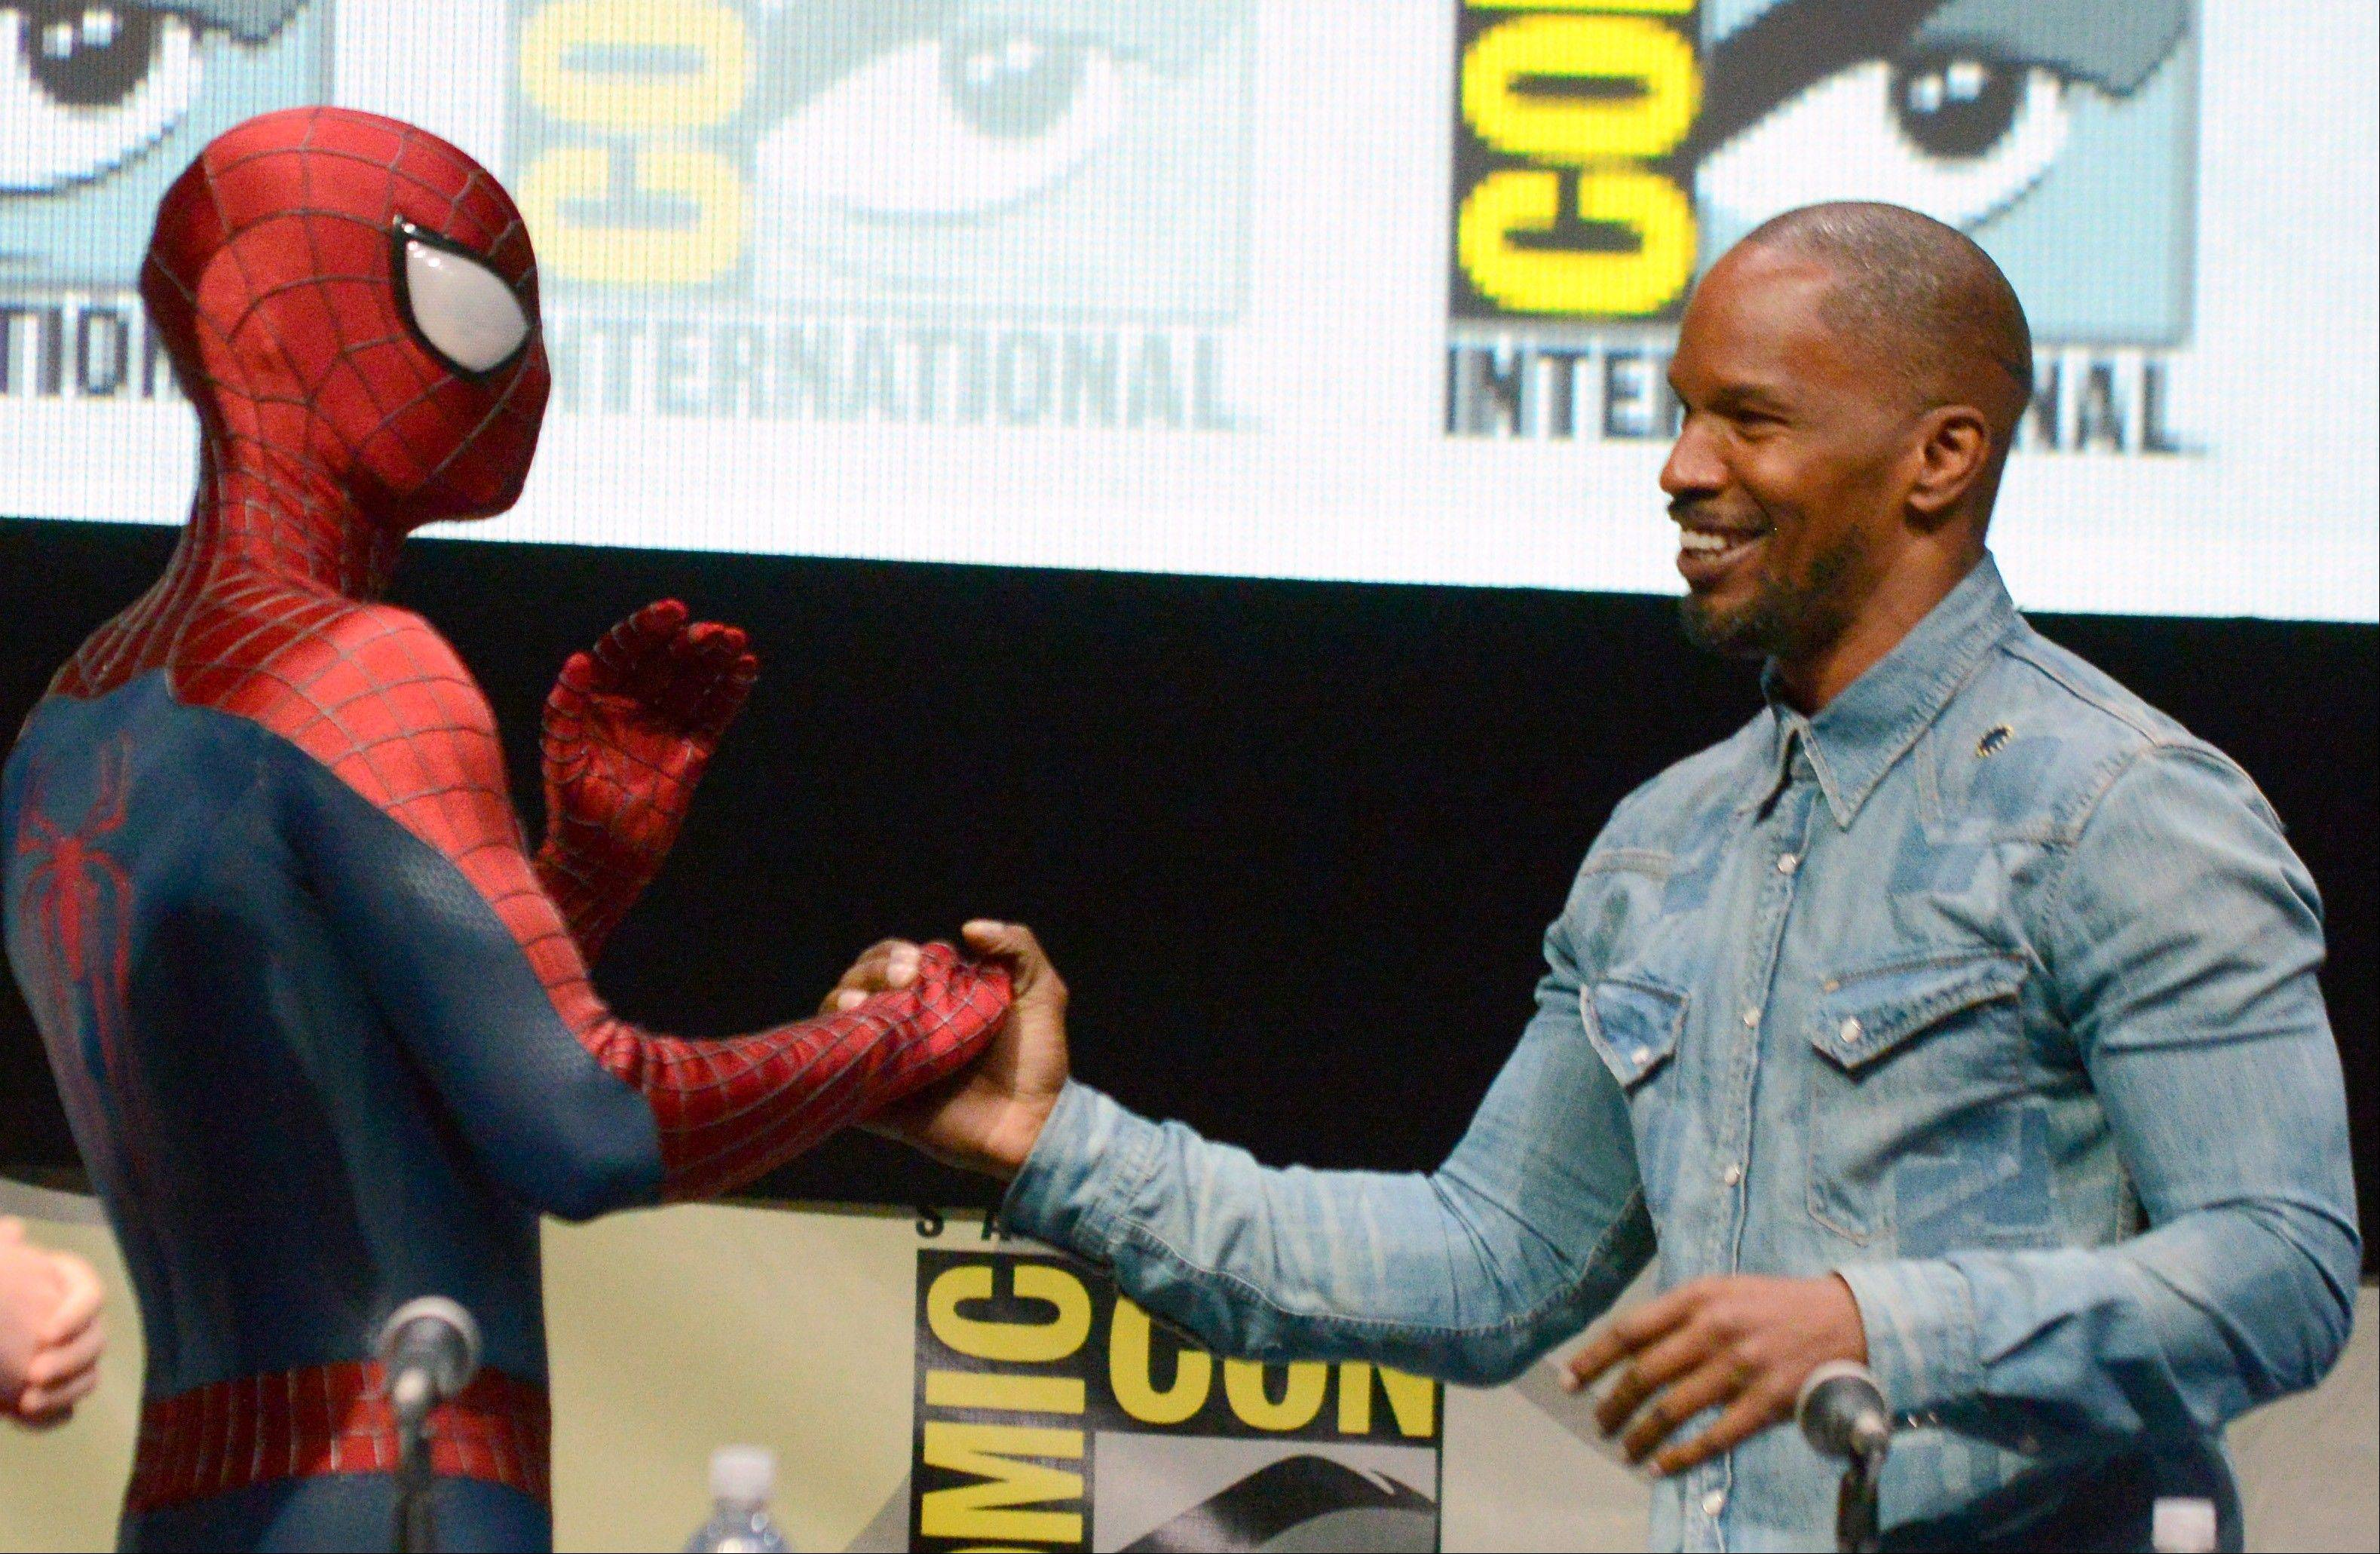 "Spider-Man, aka actor Andrew Garfield, and Jamie Foxx (Electro) attend the ""The Amazing Spider-Man 2"" panel Friday at Comic-Con International in San Diego."